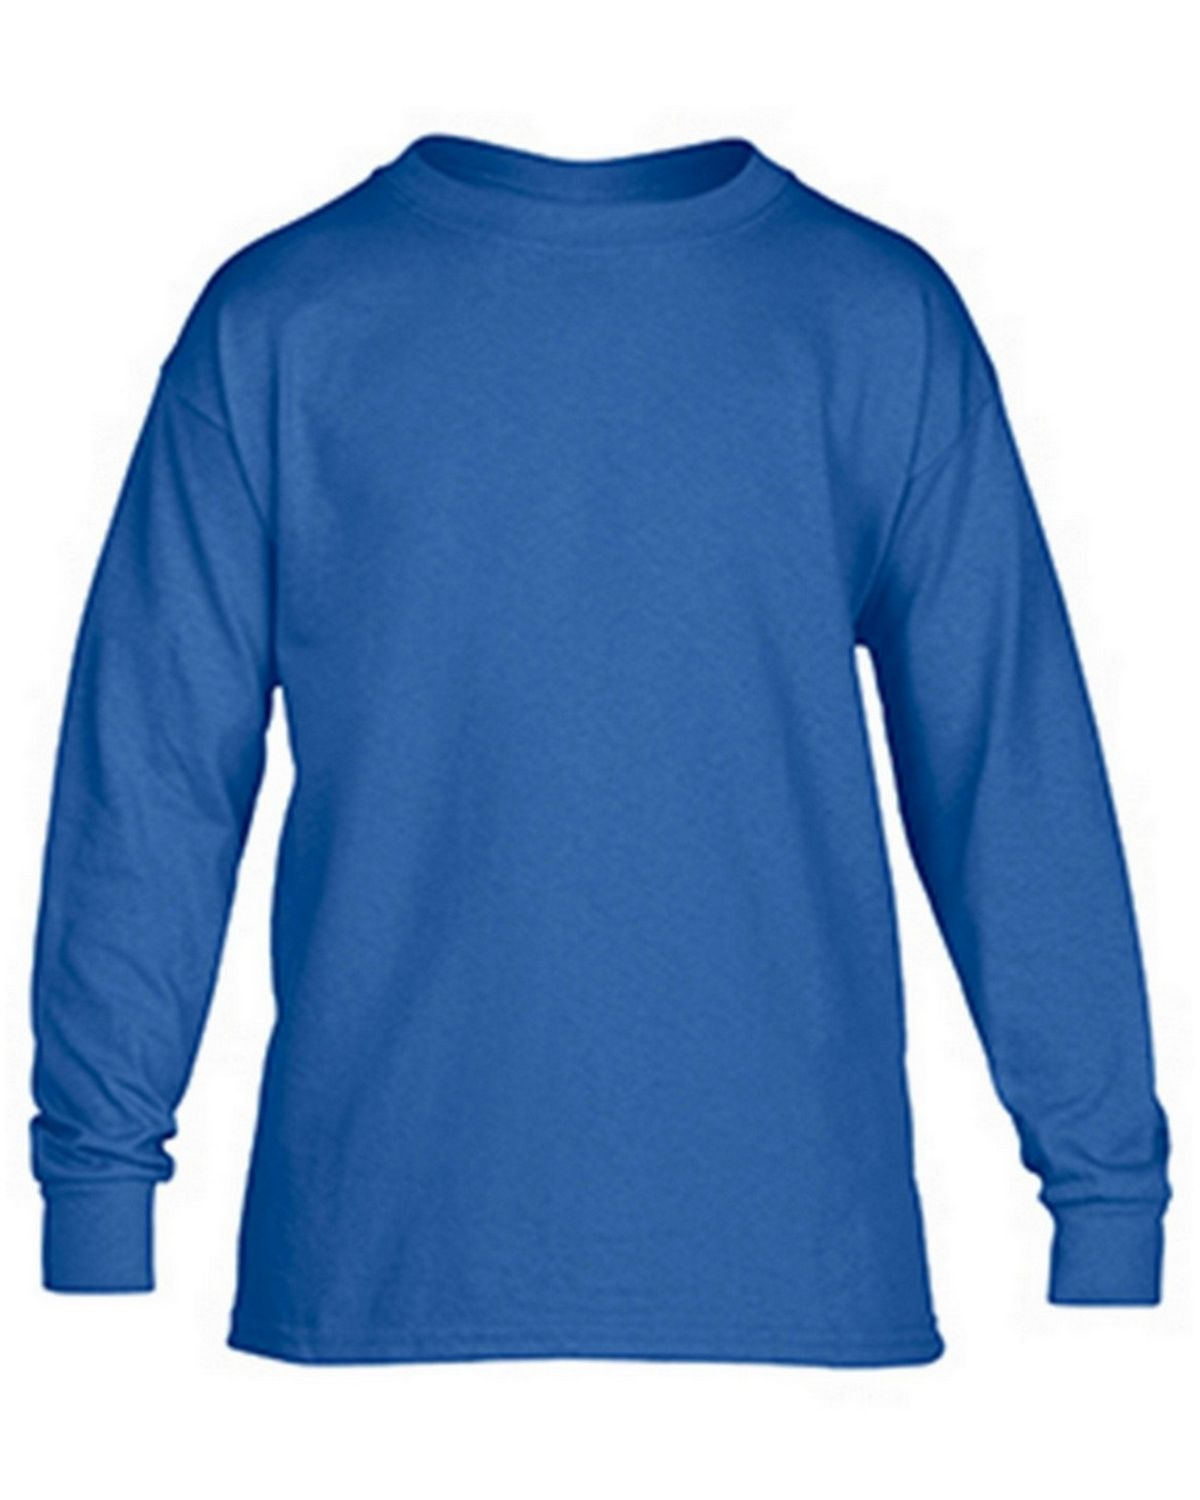 Gildan G5400B Youth Long Sleeve Tee - Royal - M G5400B